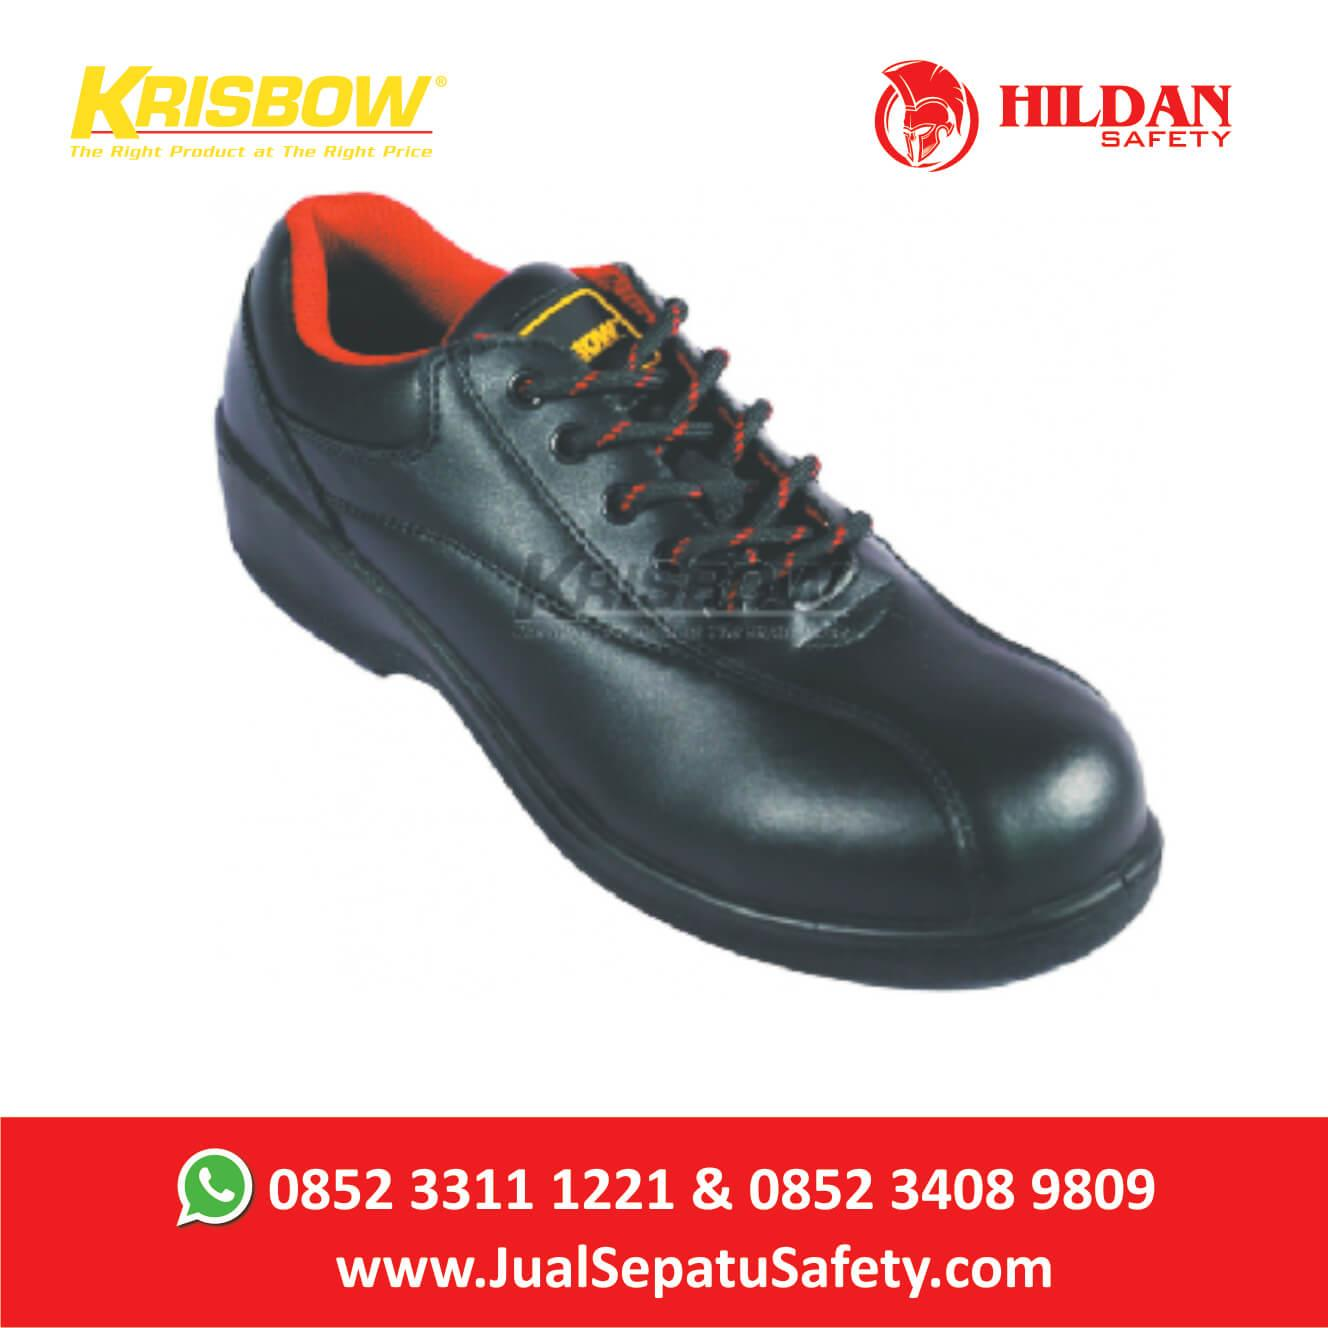 Sell Krisbow Safety Shoes Athena Sepatu Wanita From